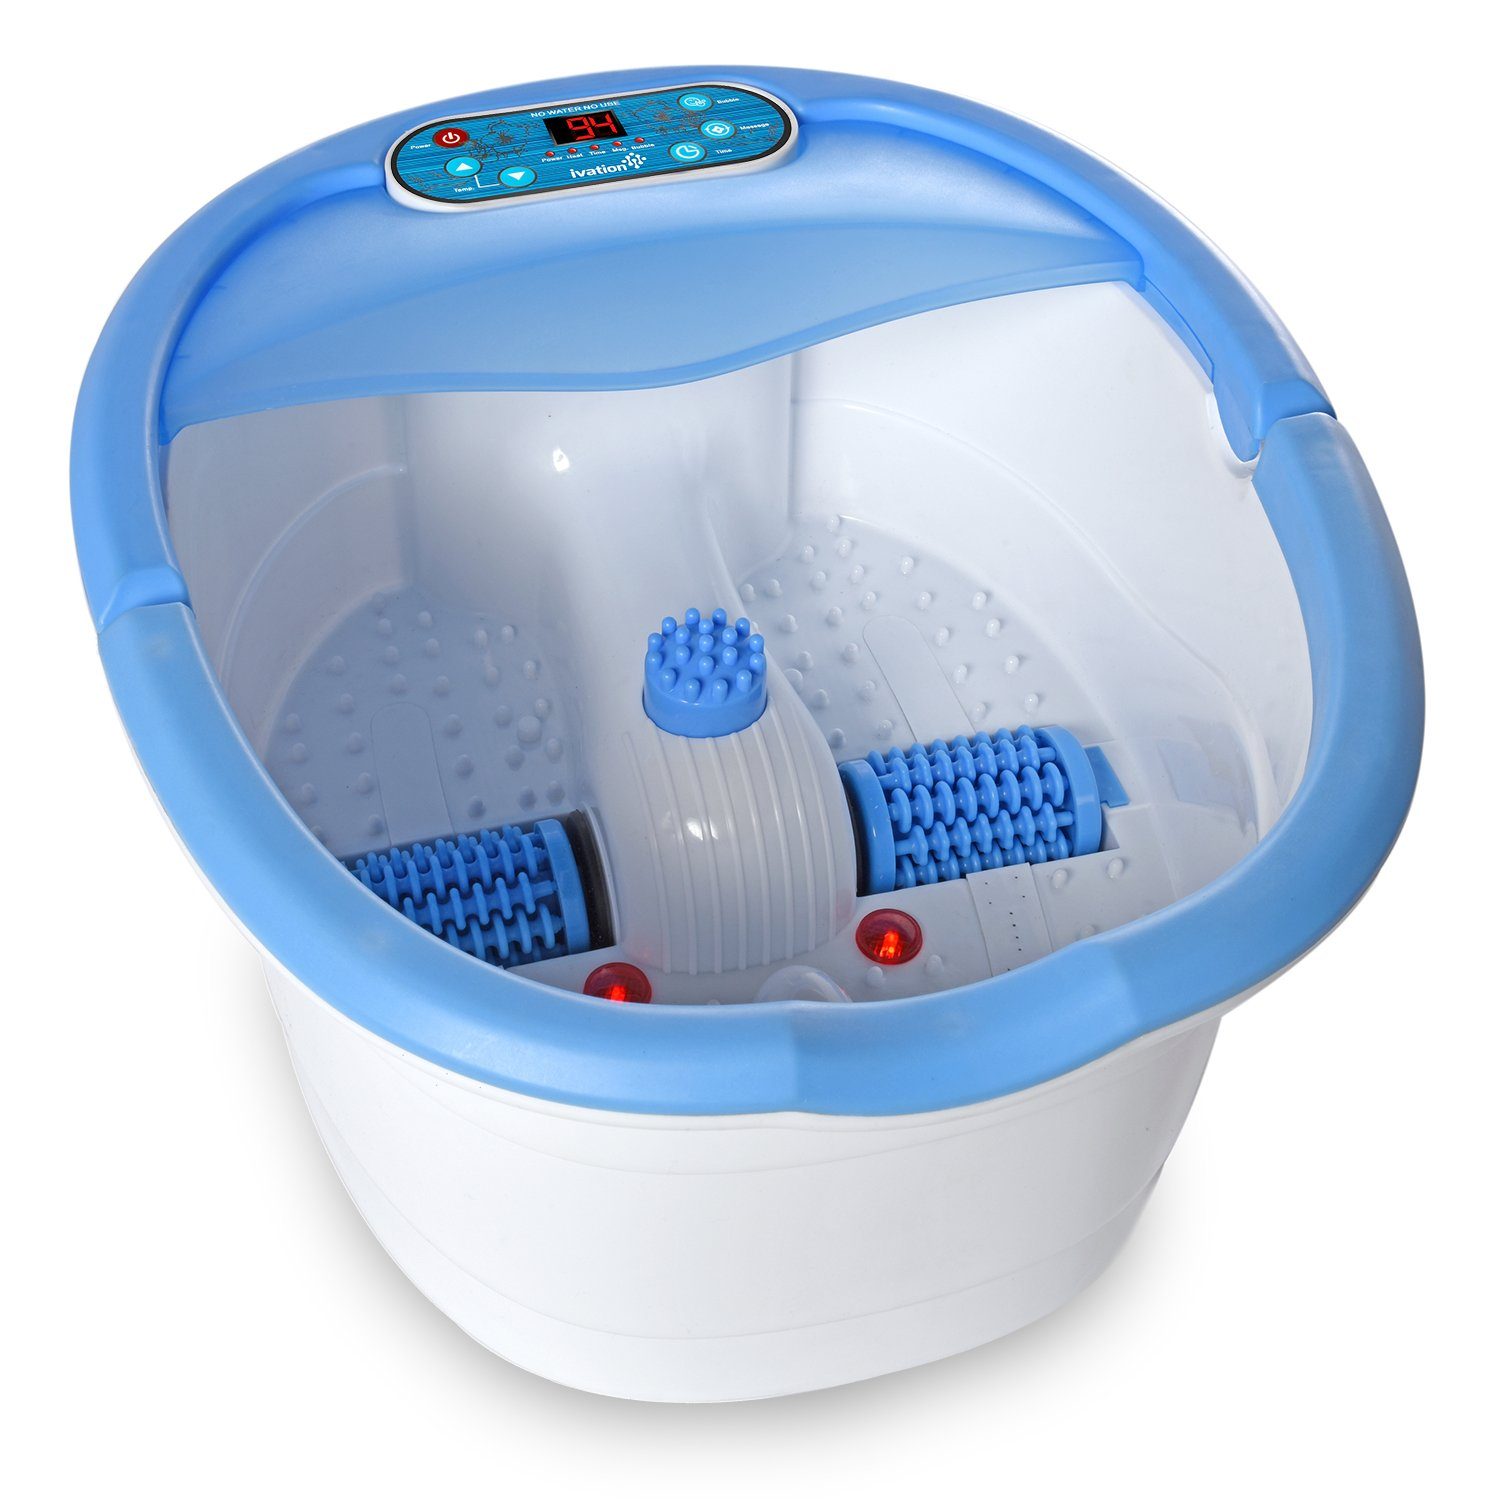 Ivation Multifunction Foot Spa - Heated Bath with Vibration, Rollers, Bubble Massage & Aromatherapy - Digital Temperature Control LED Display - Includes 3 Pedicure Attachments IVAFTSPA